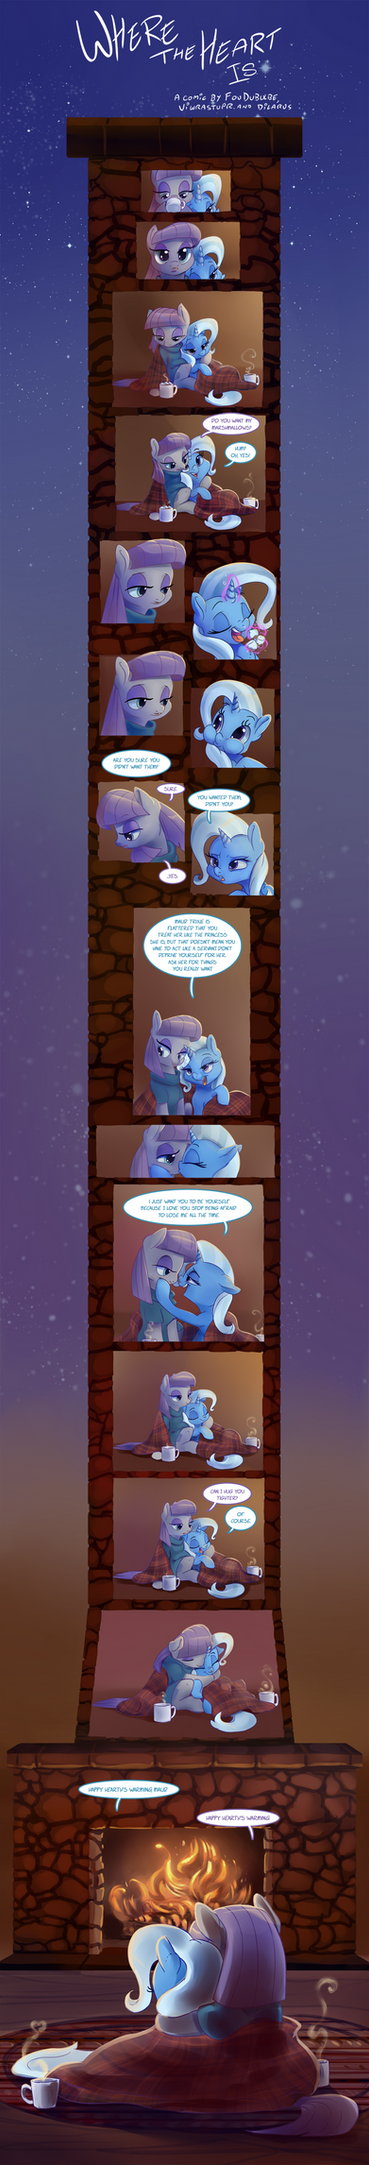 Where the Heart Is by FouDubulbe